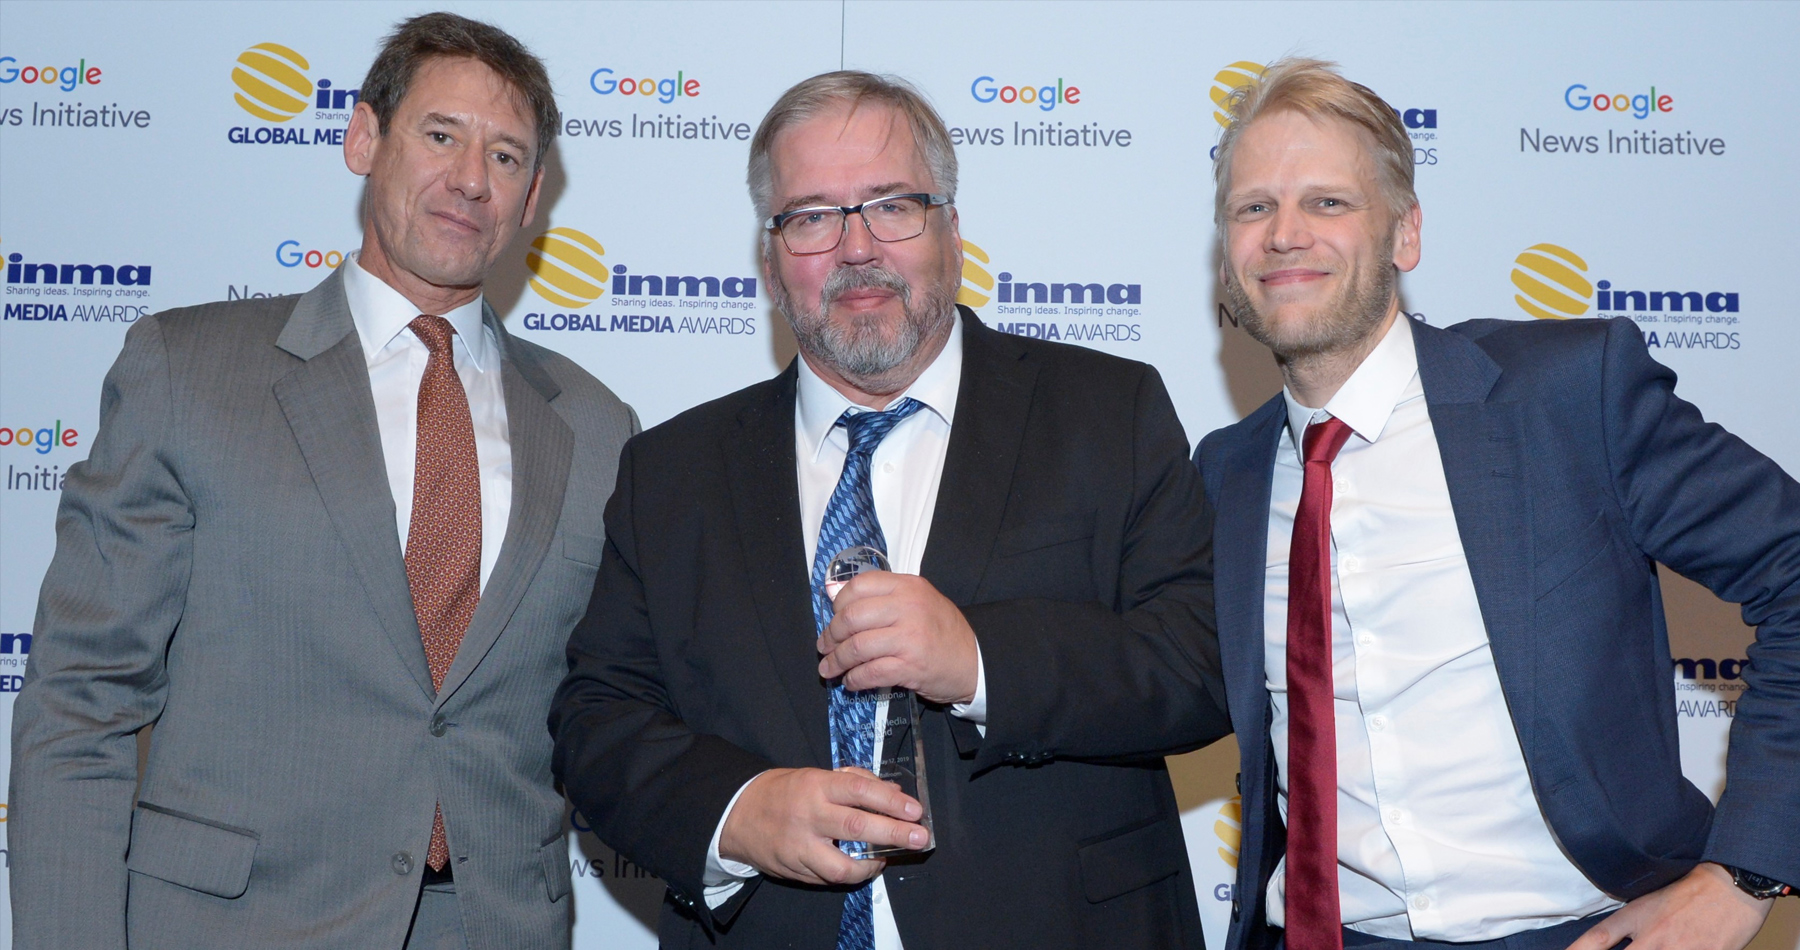 INMA reveals Global Media Awards winners, Helsingin Sanomat takes top prize